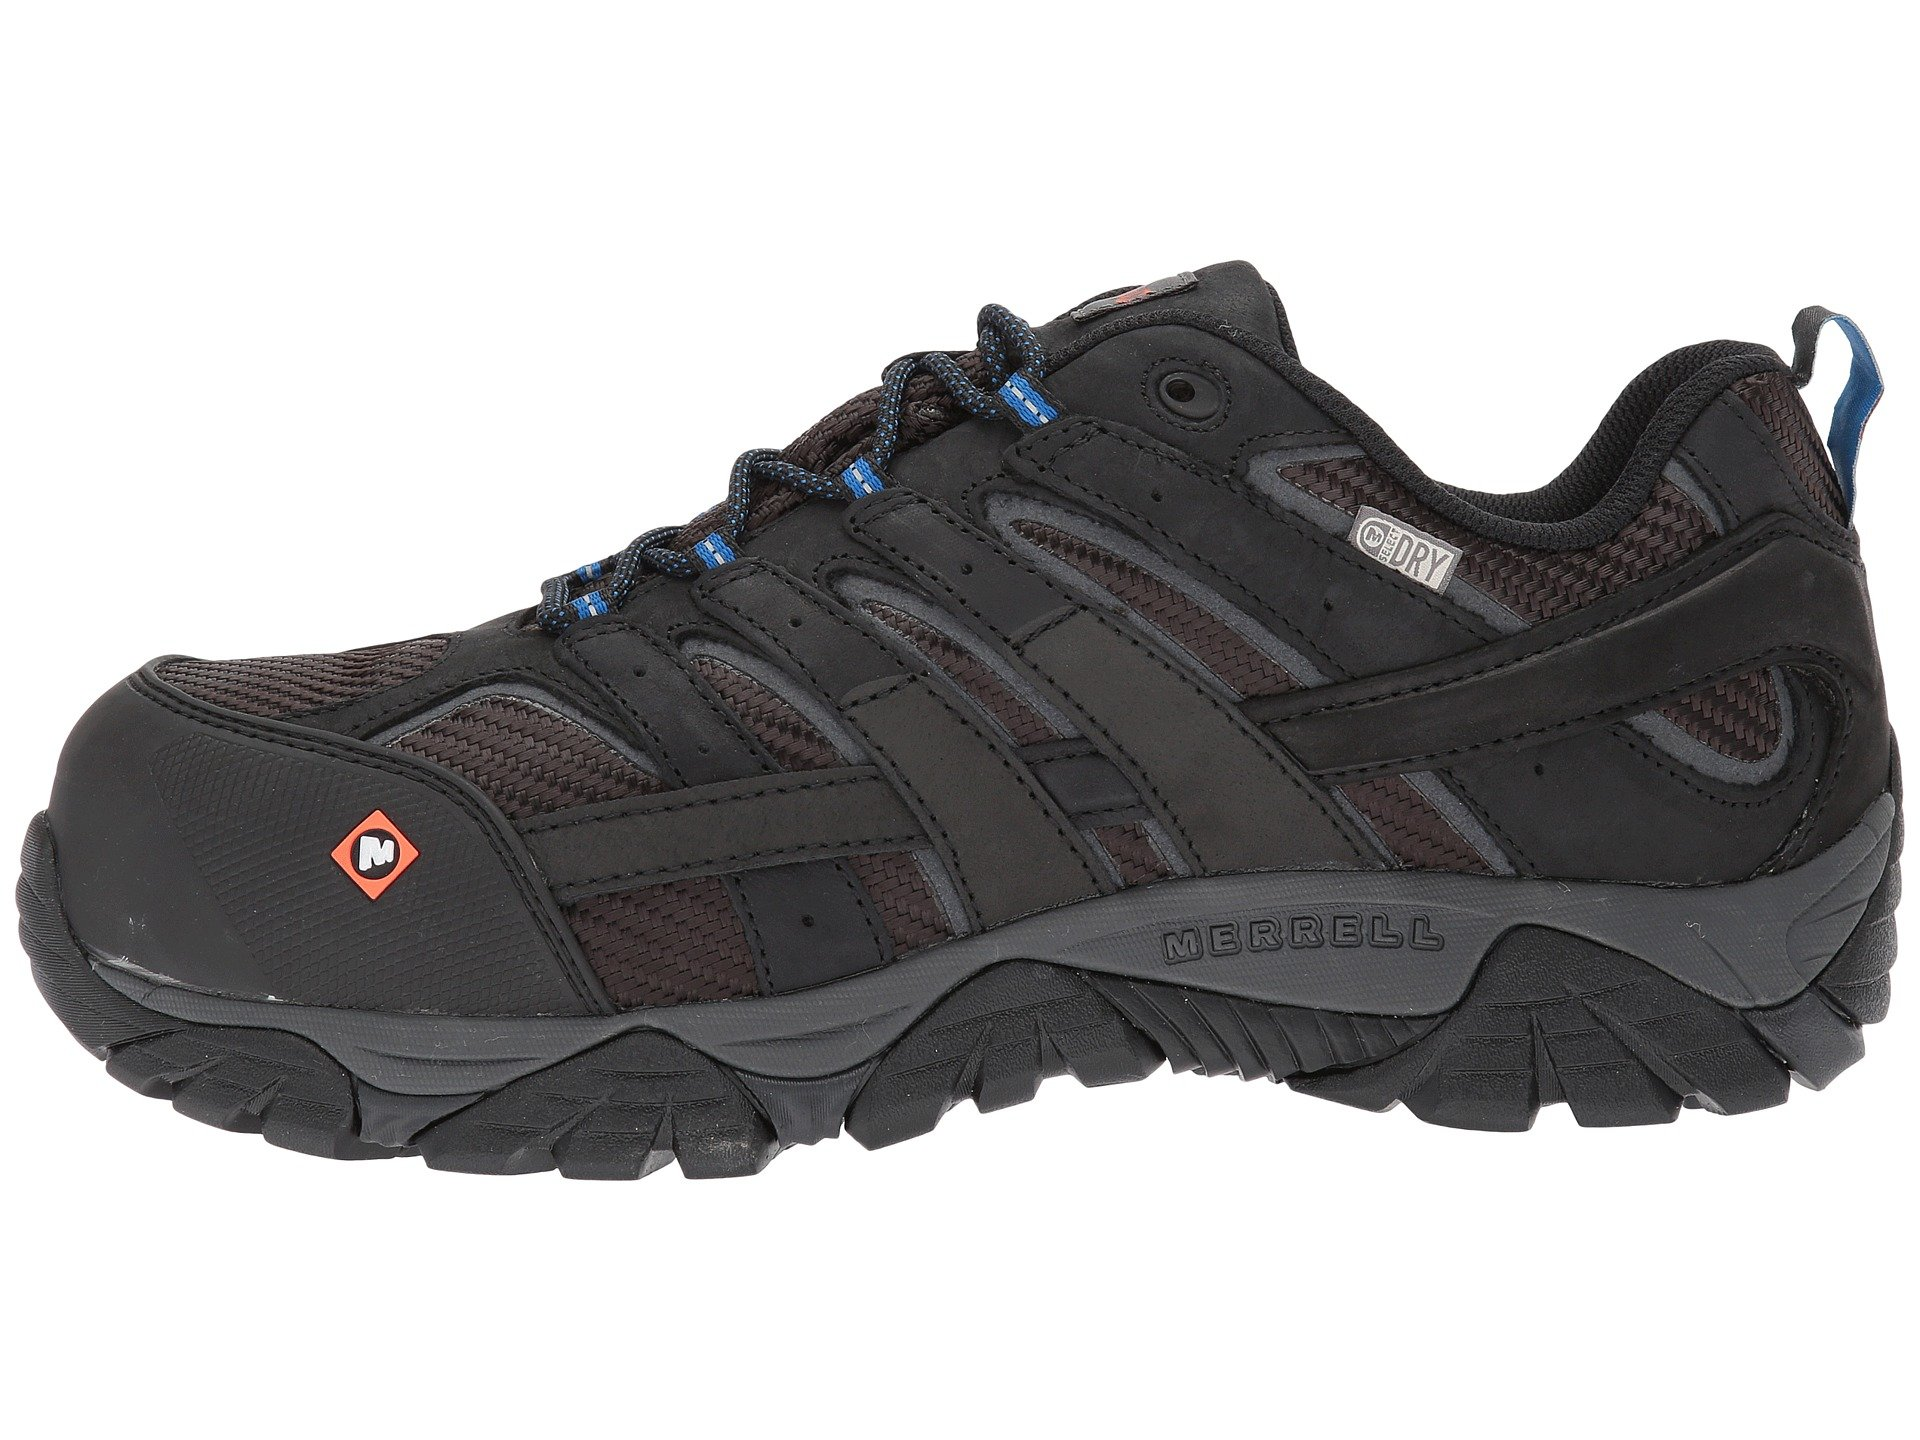 Merrell Work Moab 2 Vent Waterproof CT at Zappos.com